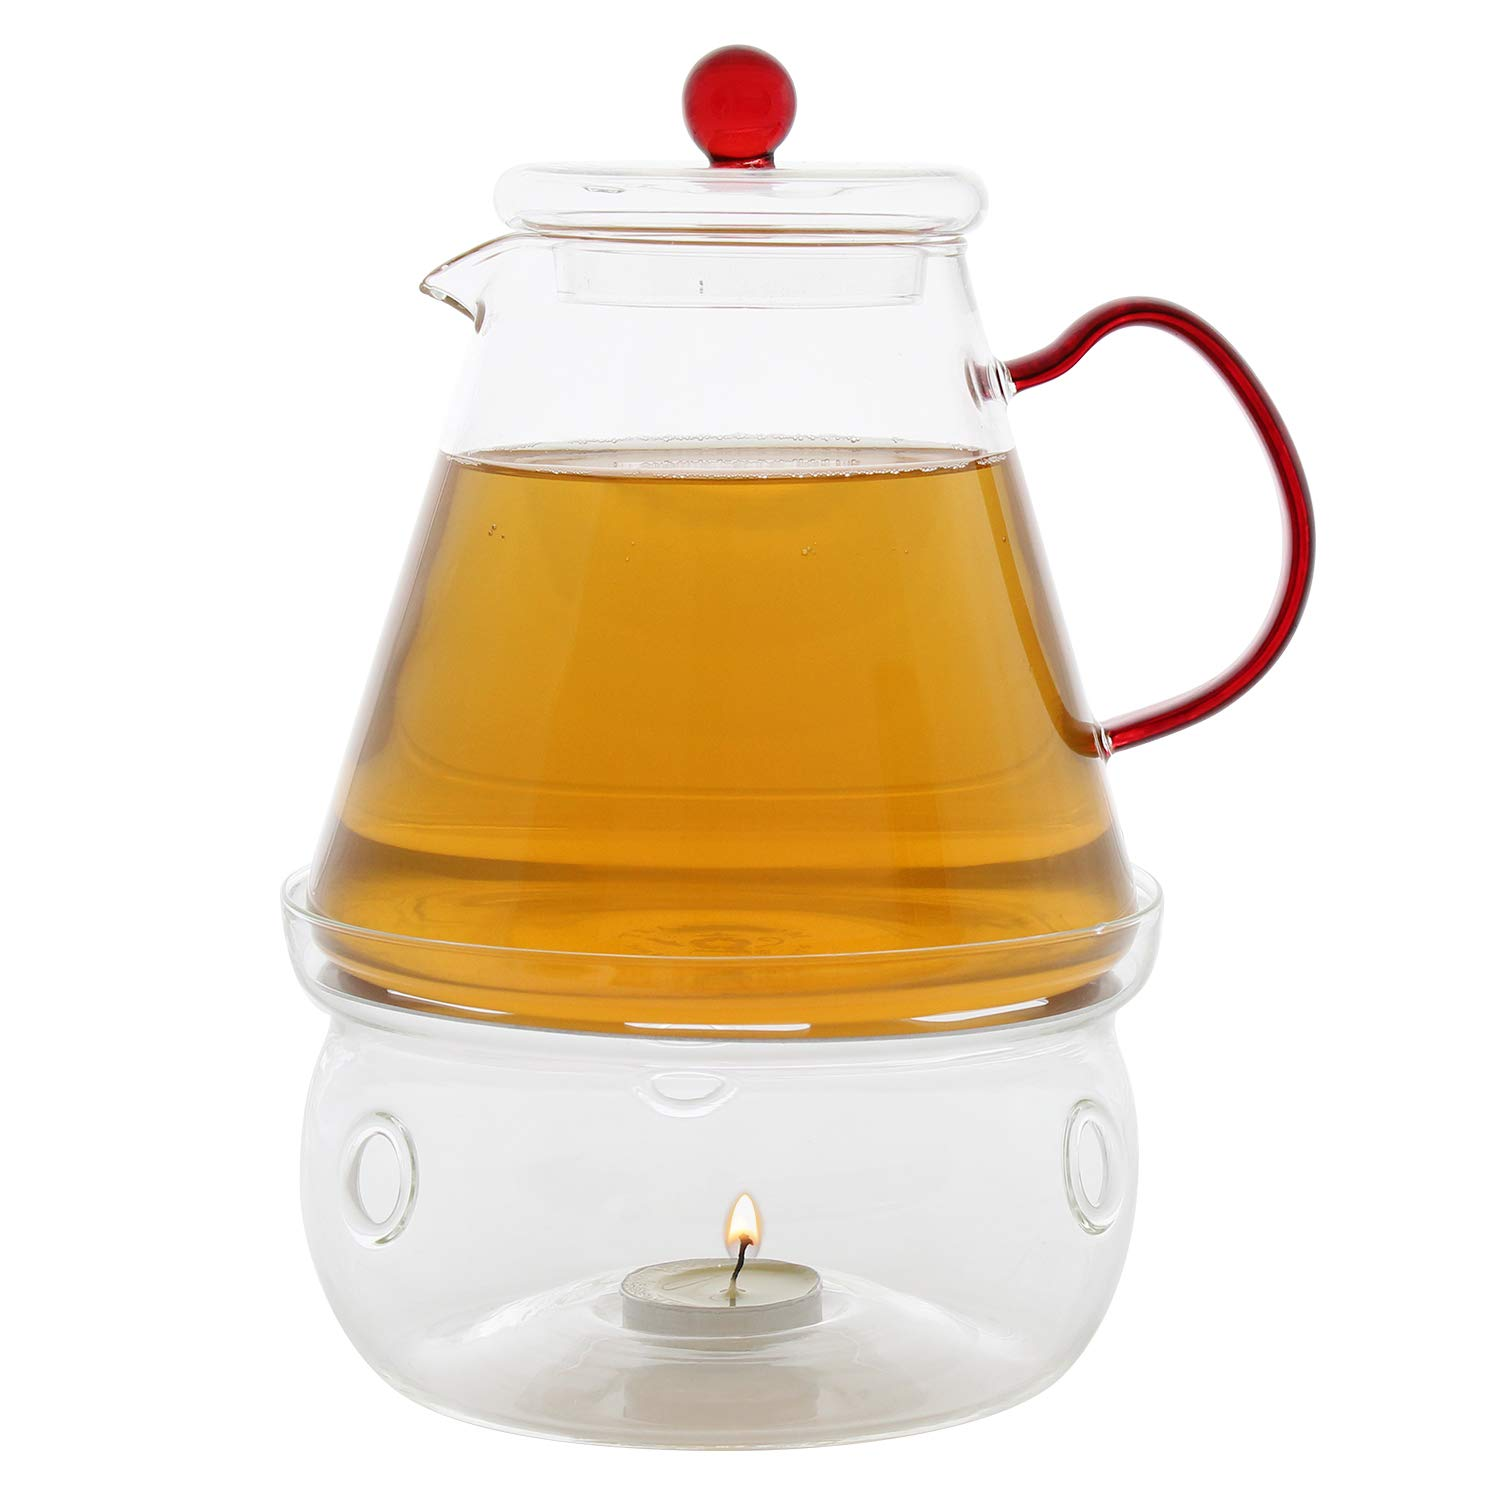 Teabloom Universal Tea Warmer (Large Size - 6 in / 15 cm diameter) - Handcrafted with Heat Proof & Lead-Free Glass - Tea Light Candle Included by Teabloom